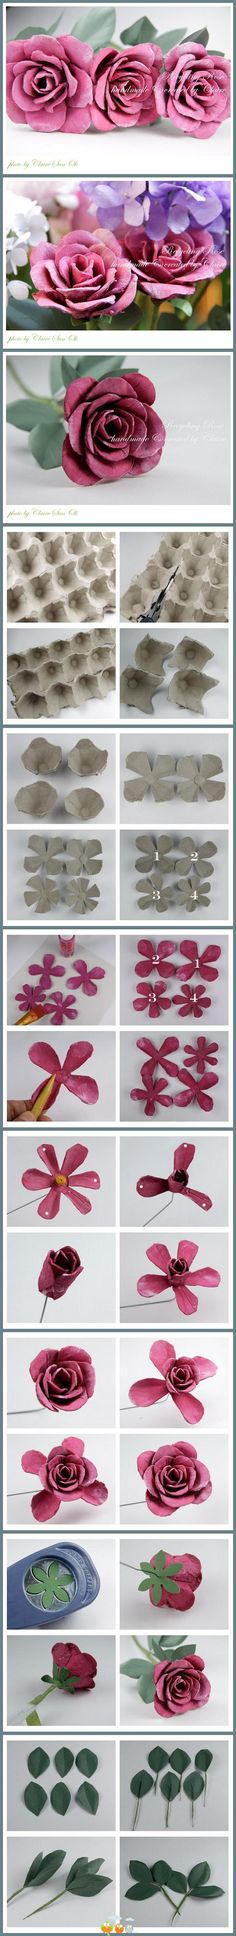 SO WONDERFUL!! FLOWERS FROM EGG CARTONS; YOU ARE VERY TALENTED! DO YOU MIND IF  I USE YOUR IDEA? IT WOULD BE PERSONAL USE ONLY.